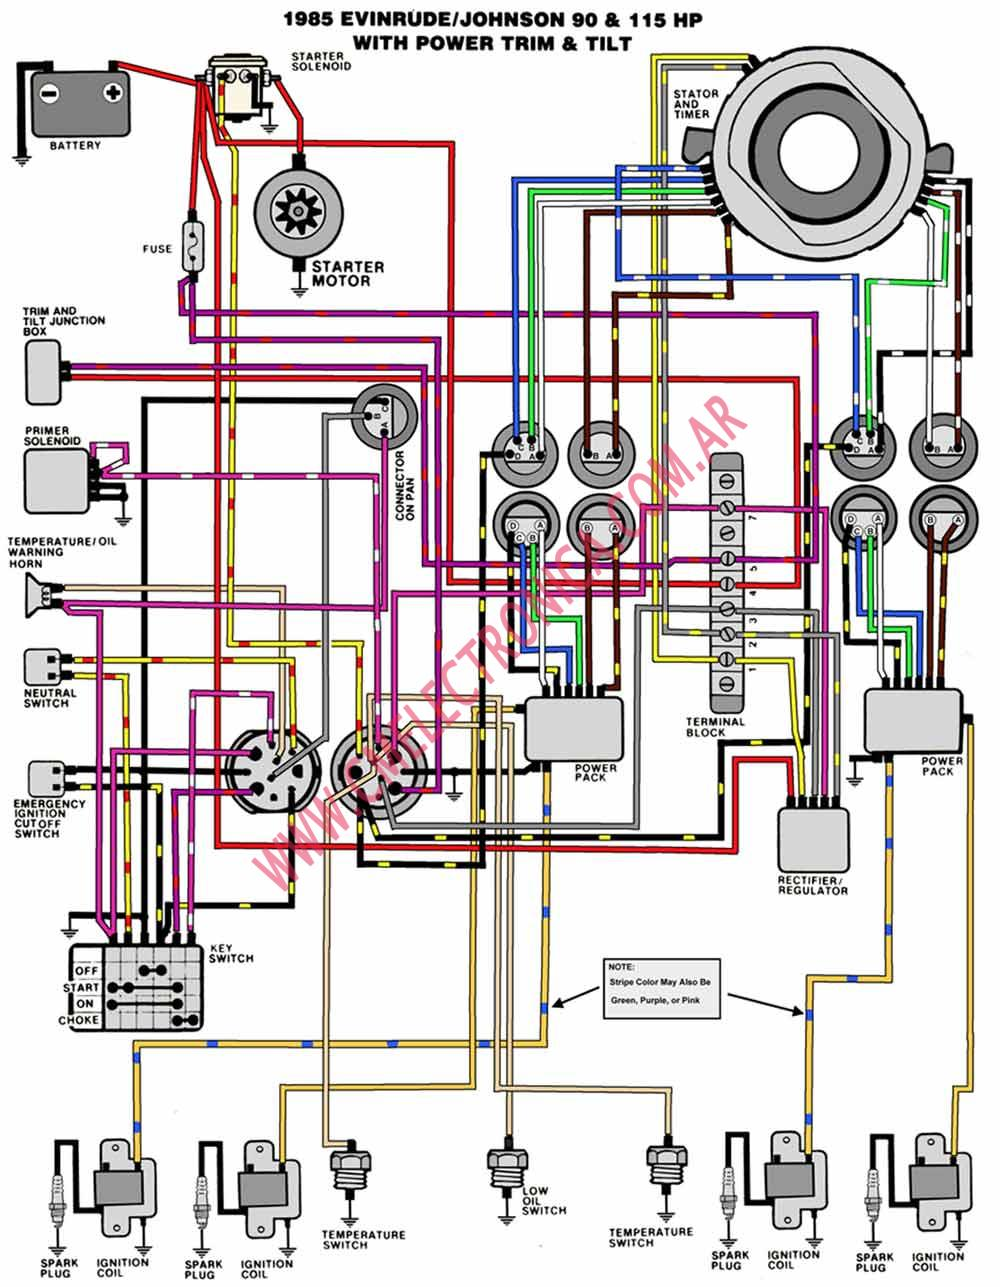 1996 Evinrude Skimmer Snowmobile Wiring Diagram Ac Duo Therm Thermostat Wiring Diagram Wire Diag Viking Jeanjaures37 Fr